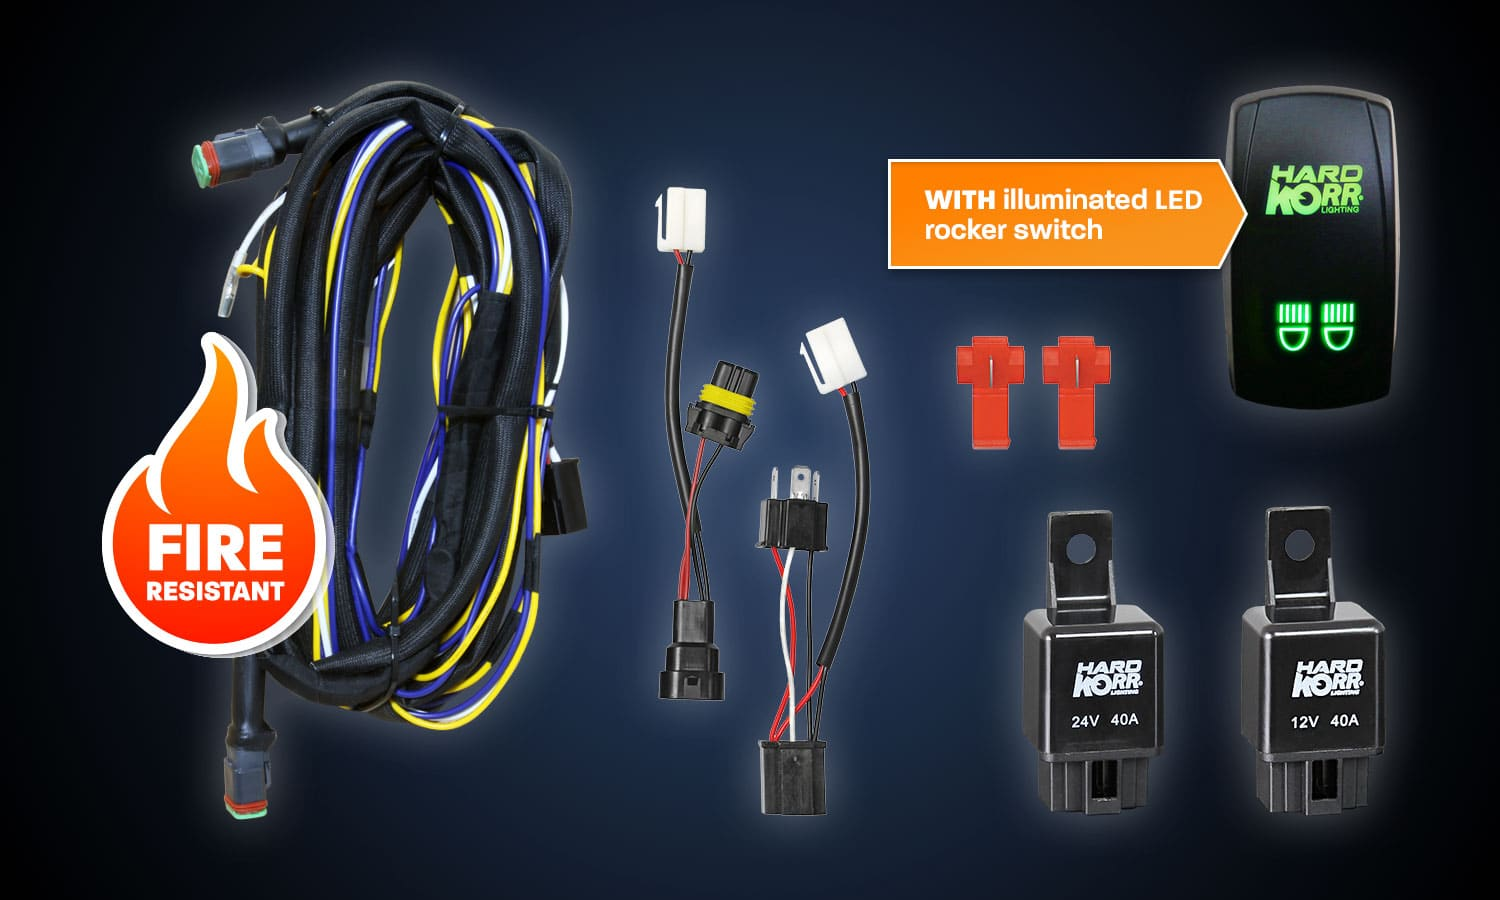 Automotive Off Road Accessories Hard Korr Uk Wiring Harness Kits Kit With Illuminated Rocker Switch